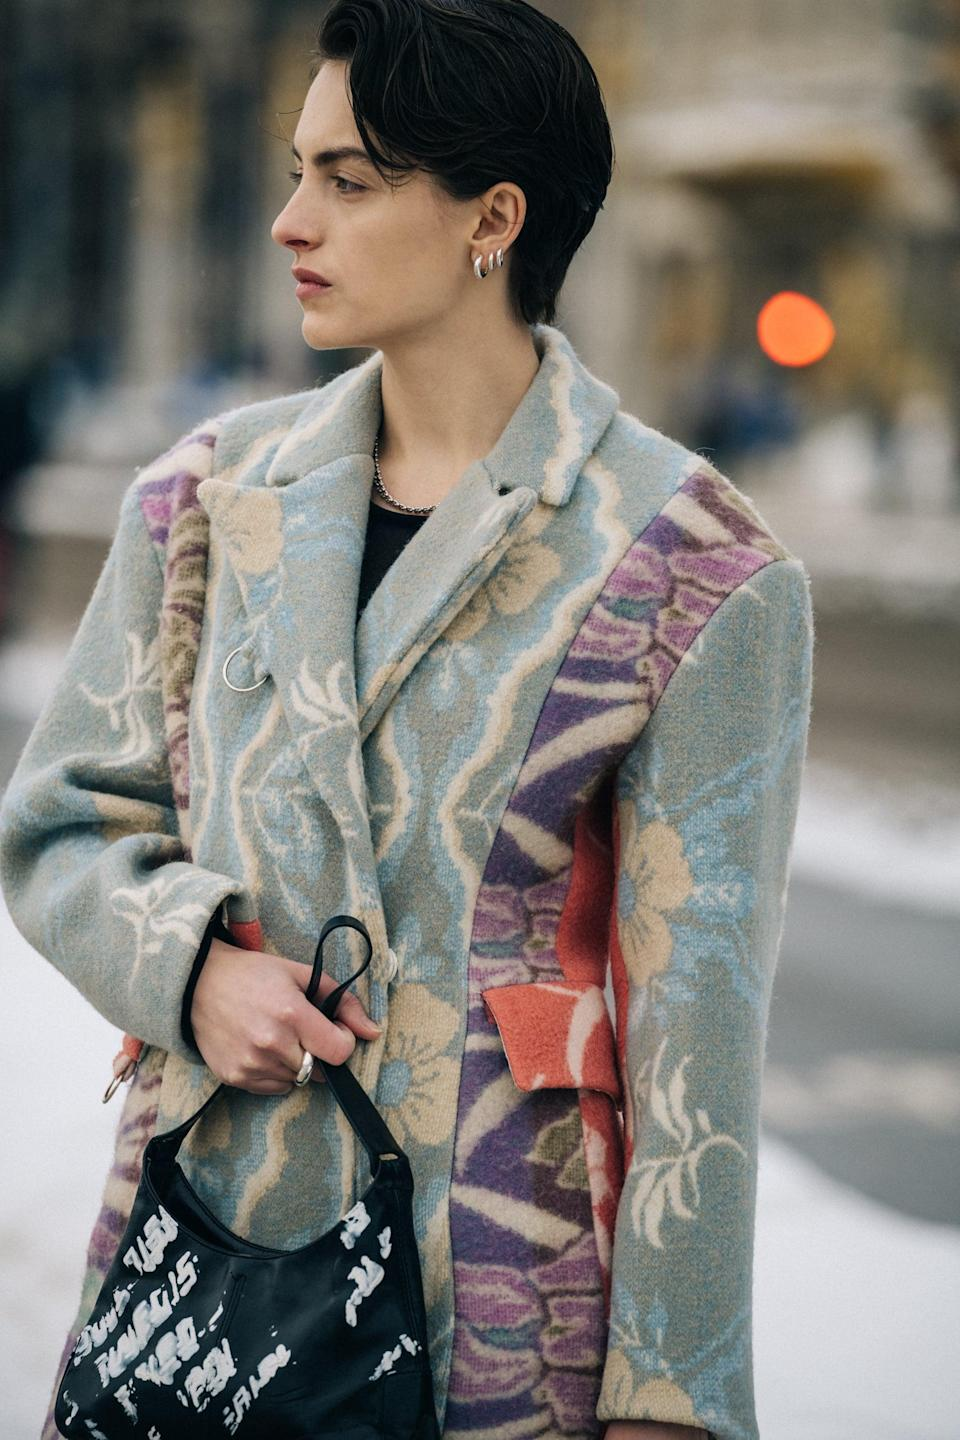 <p>Wear a whimsical pastel pattern with a graphic-print graffiti bag and revel in the edgy juxtaposition of the look.</p>